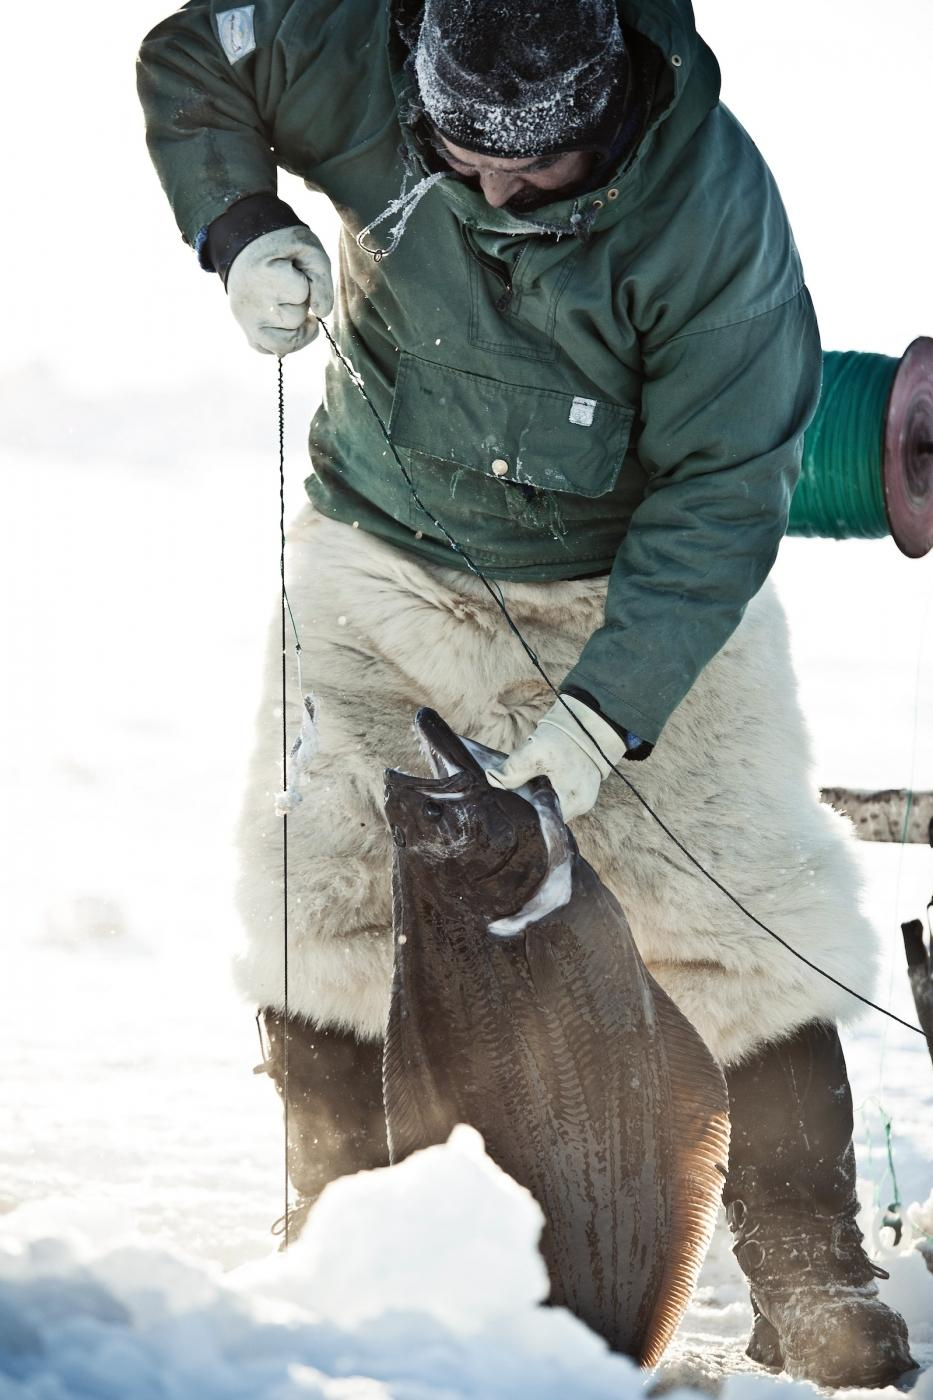 Fishing for halibut near Ilulissat in Greenland. Photo by André Schoenherr - Visit Greenland